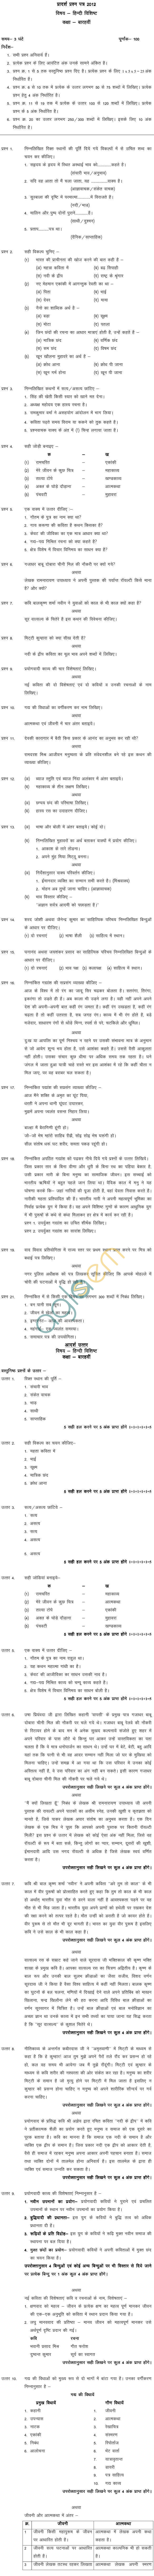 MP Board Class XII Hindi Special Model Questions & Answers - Set 4